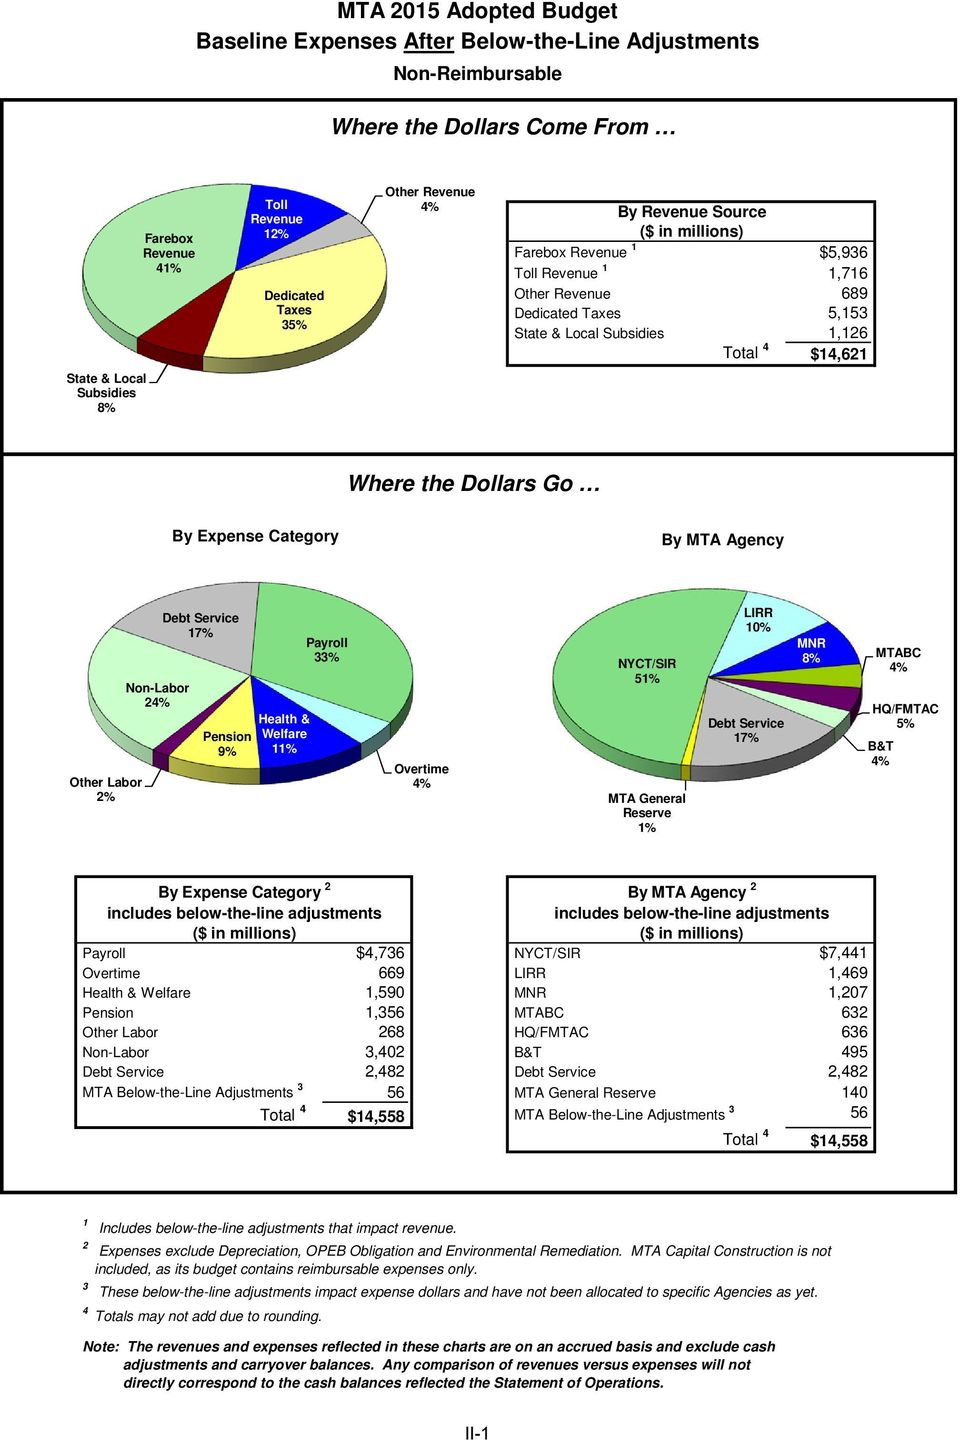 Expense Category By MTA Agency Other Labor 2% Non-Labor 24% Debt Service 17% Pension 9% Health & Welfare 11% Payroll 33% Overtime 4% NYCT/SIR 51% MTA General Reserve 1% LIRR 10% Debt Service 17% MNR